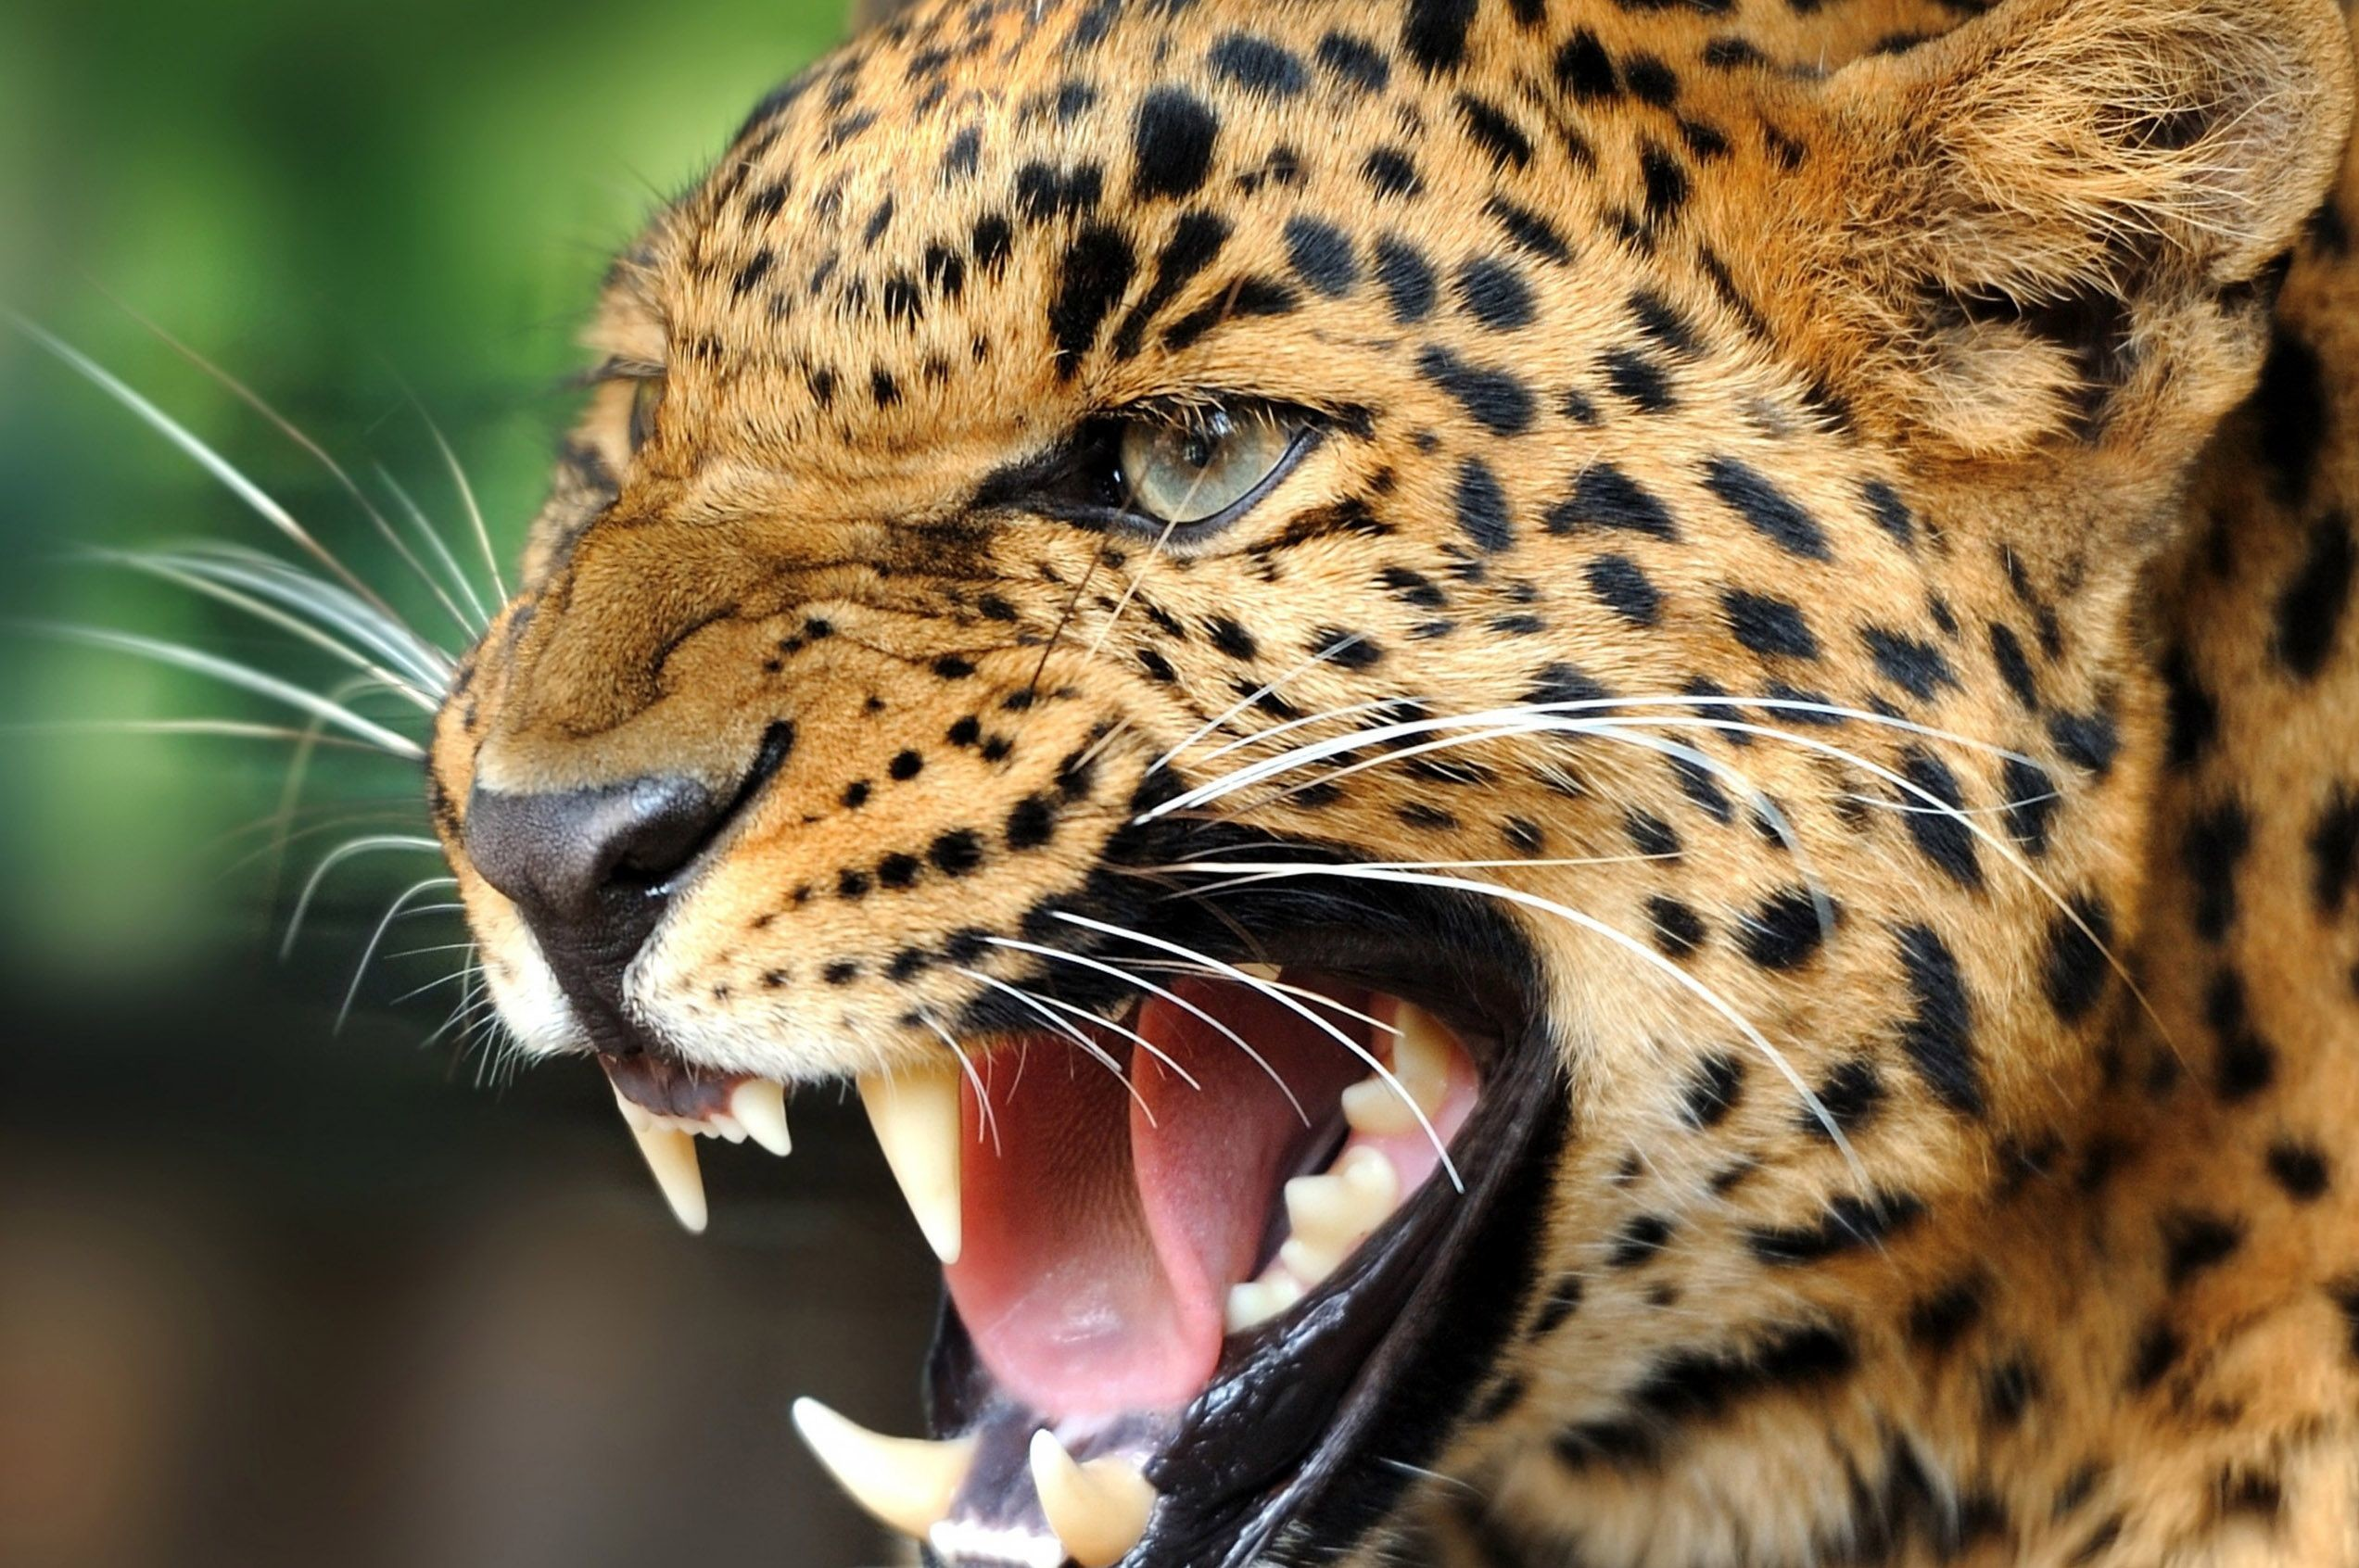 Wild animals hd wallpapers – Hd Wallpapers Of Wild Animals  Download